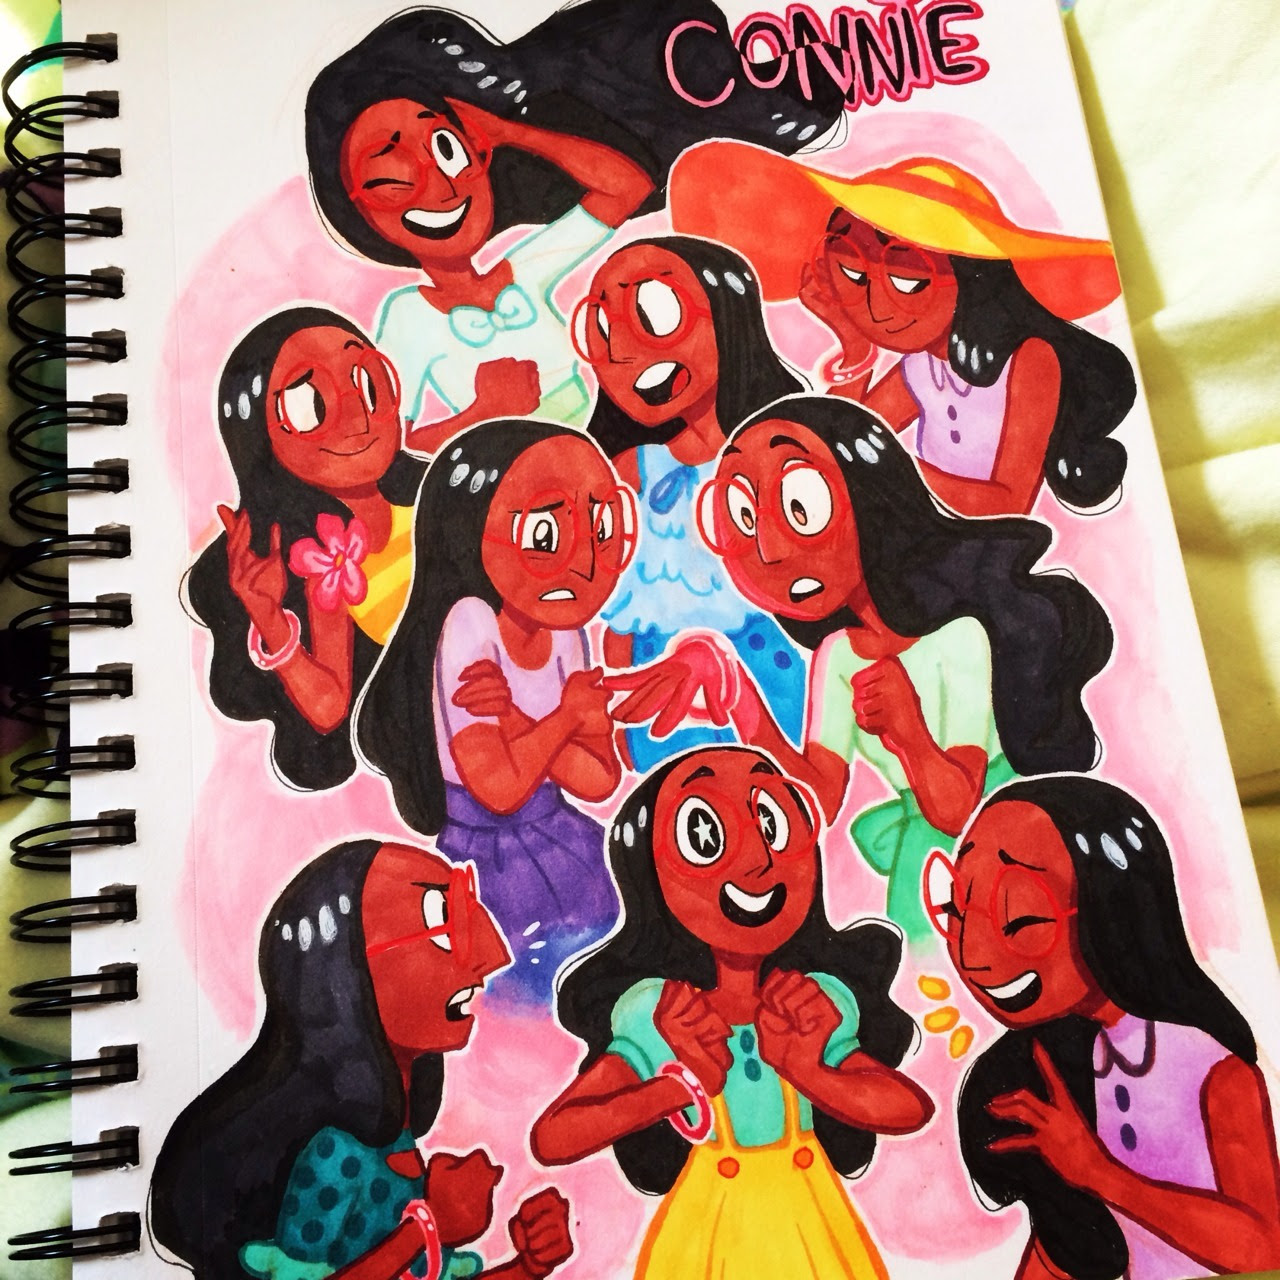 I finished my page of Connie sketches using copic markers and a white gelly roll pen. My only regrets are for messing up and not making Connie's glasses more visible oops uvu;;;